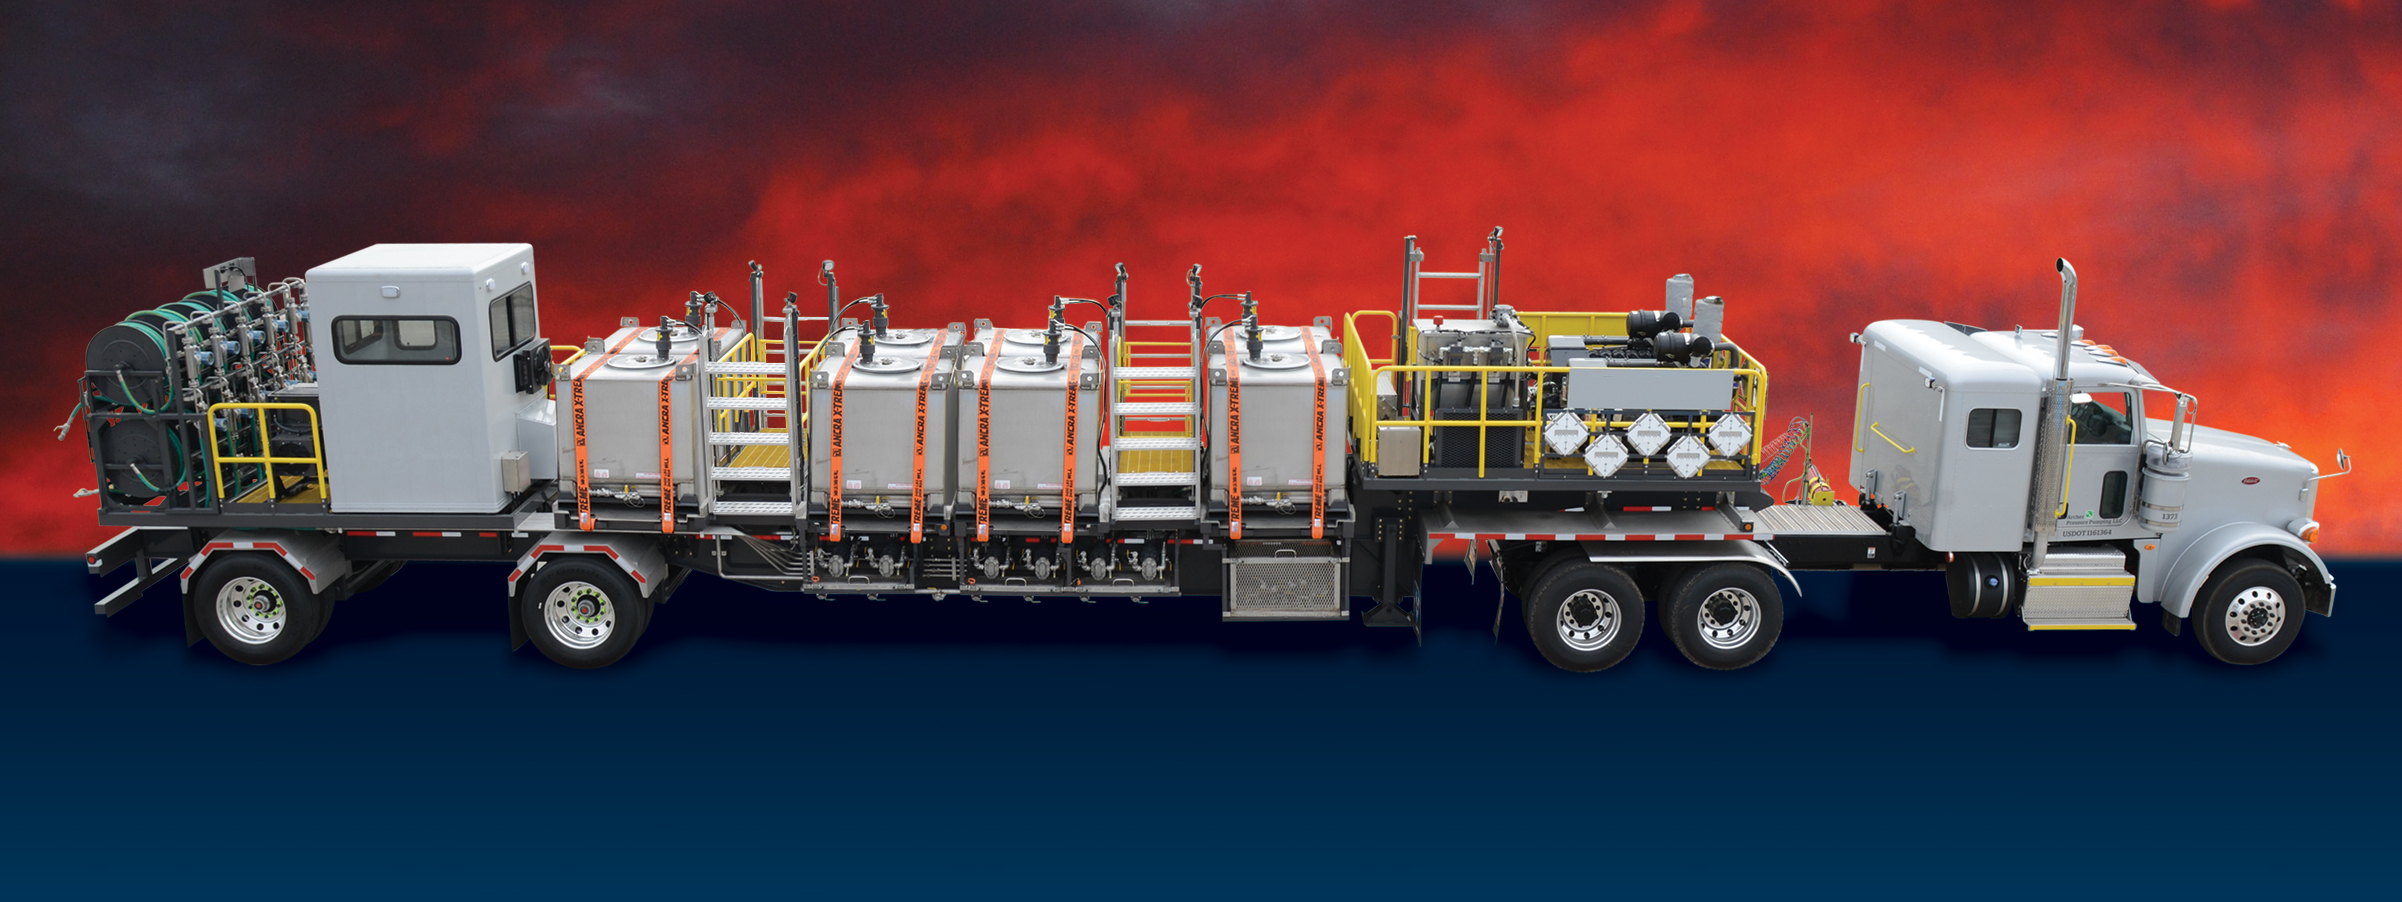 Chemical Additive Units | Well Service Pumping Equipment